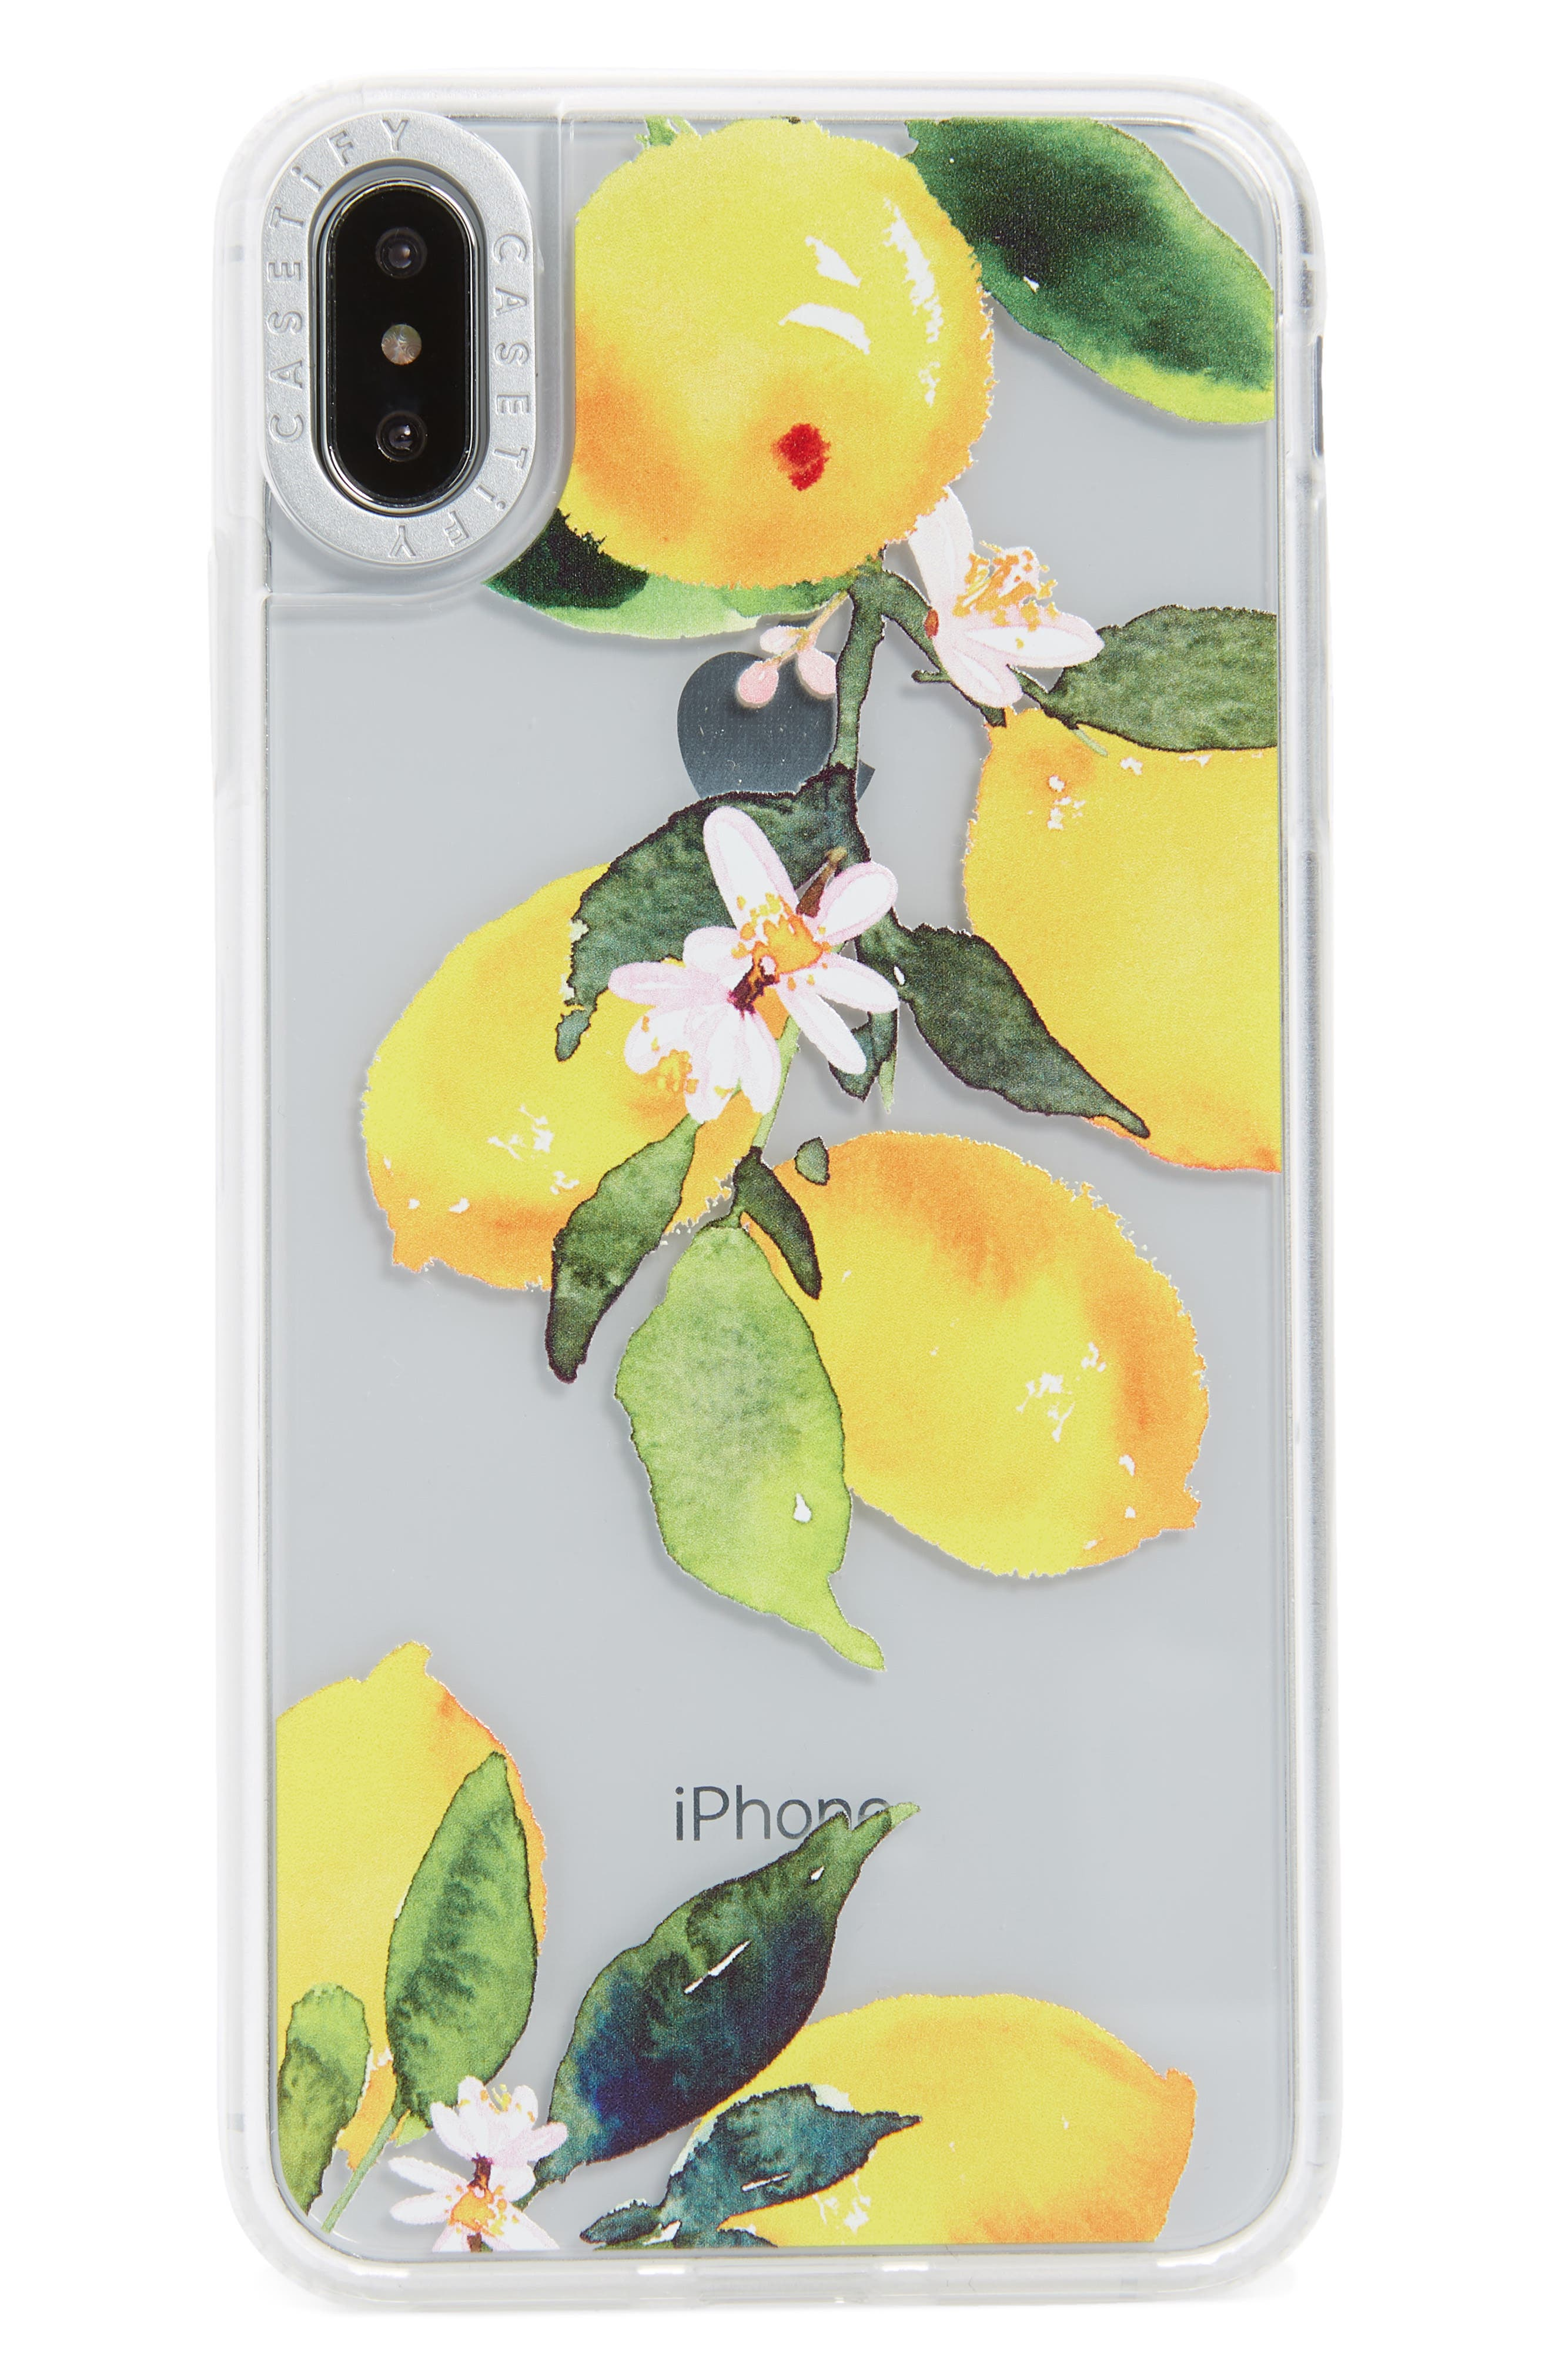 Watercolor Lemon Clear Grip iPhone X/Xs, XR & X Max Case, Main, color, YELLOW/ GREEN